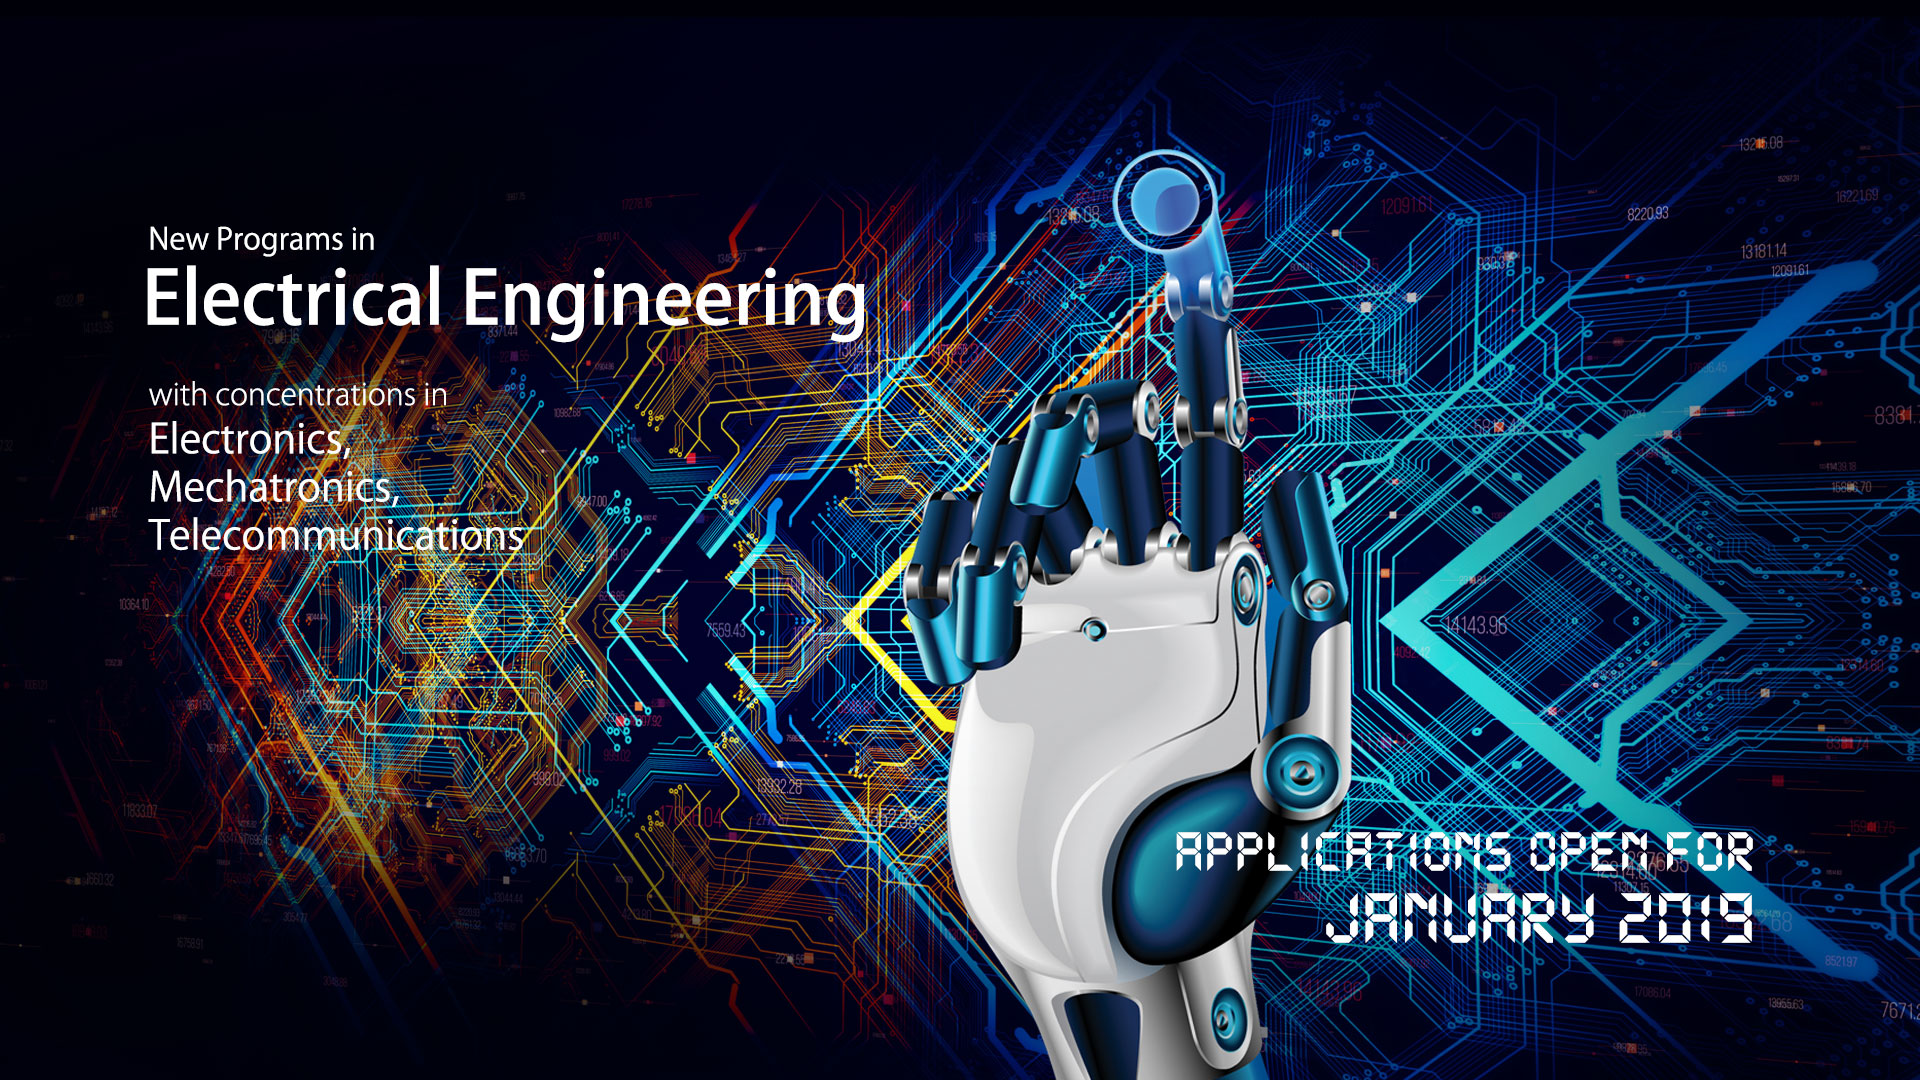 Electrical Engineering - Applications Open for January 2019